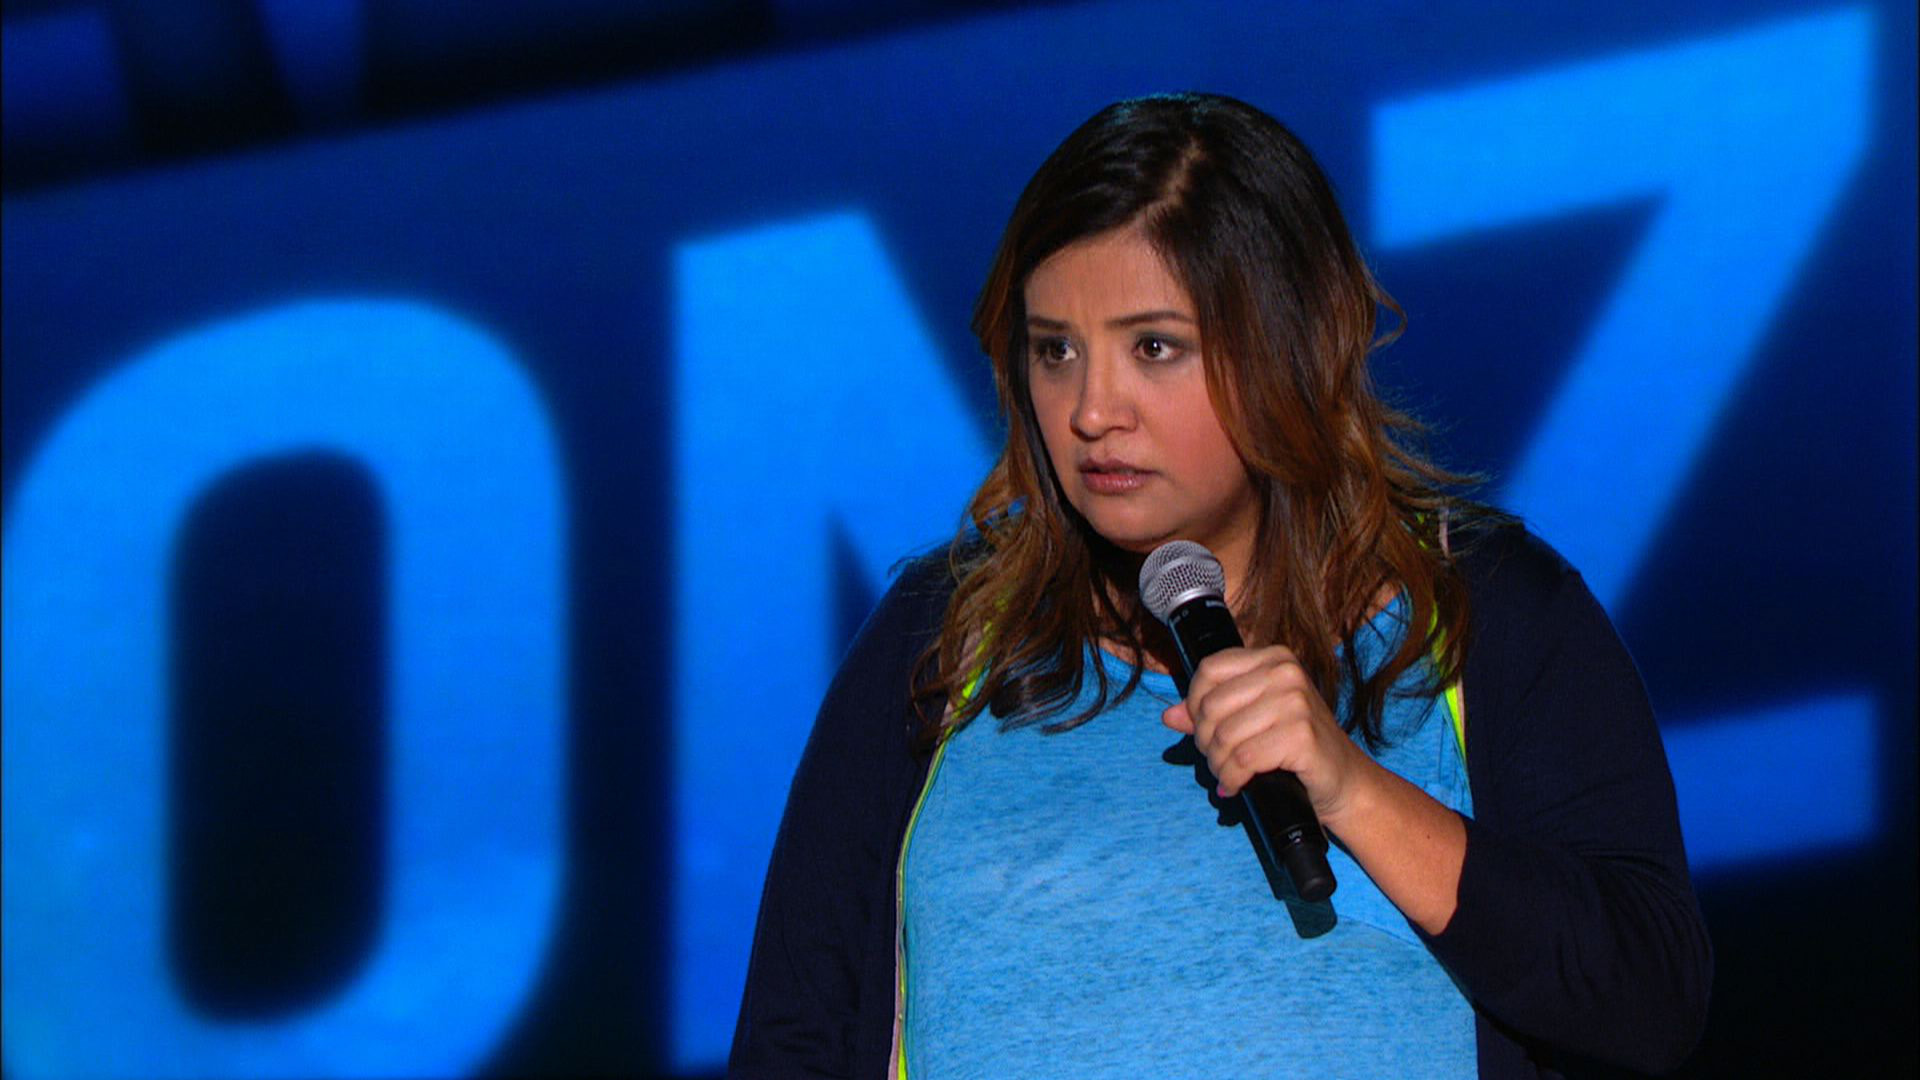 TRAILER: Comedienne Cristela Alonzo Stars In Primetime TV Show Coming This Fall — With the Same Tired Jokes.